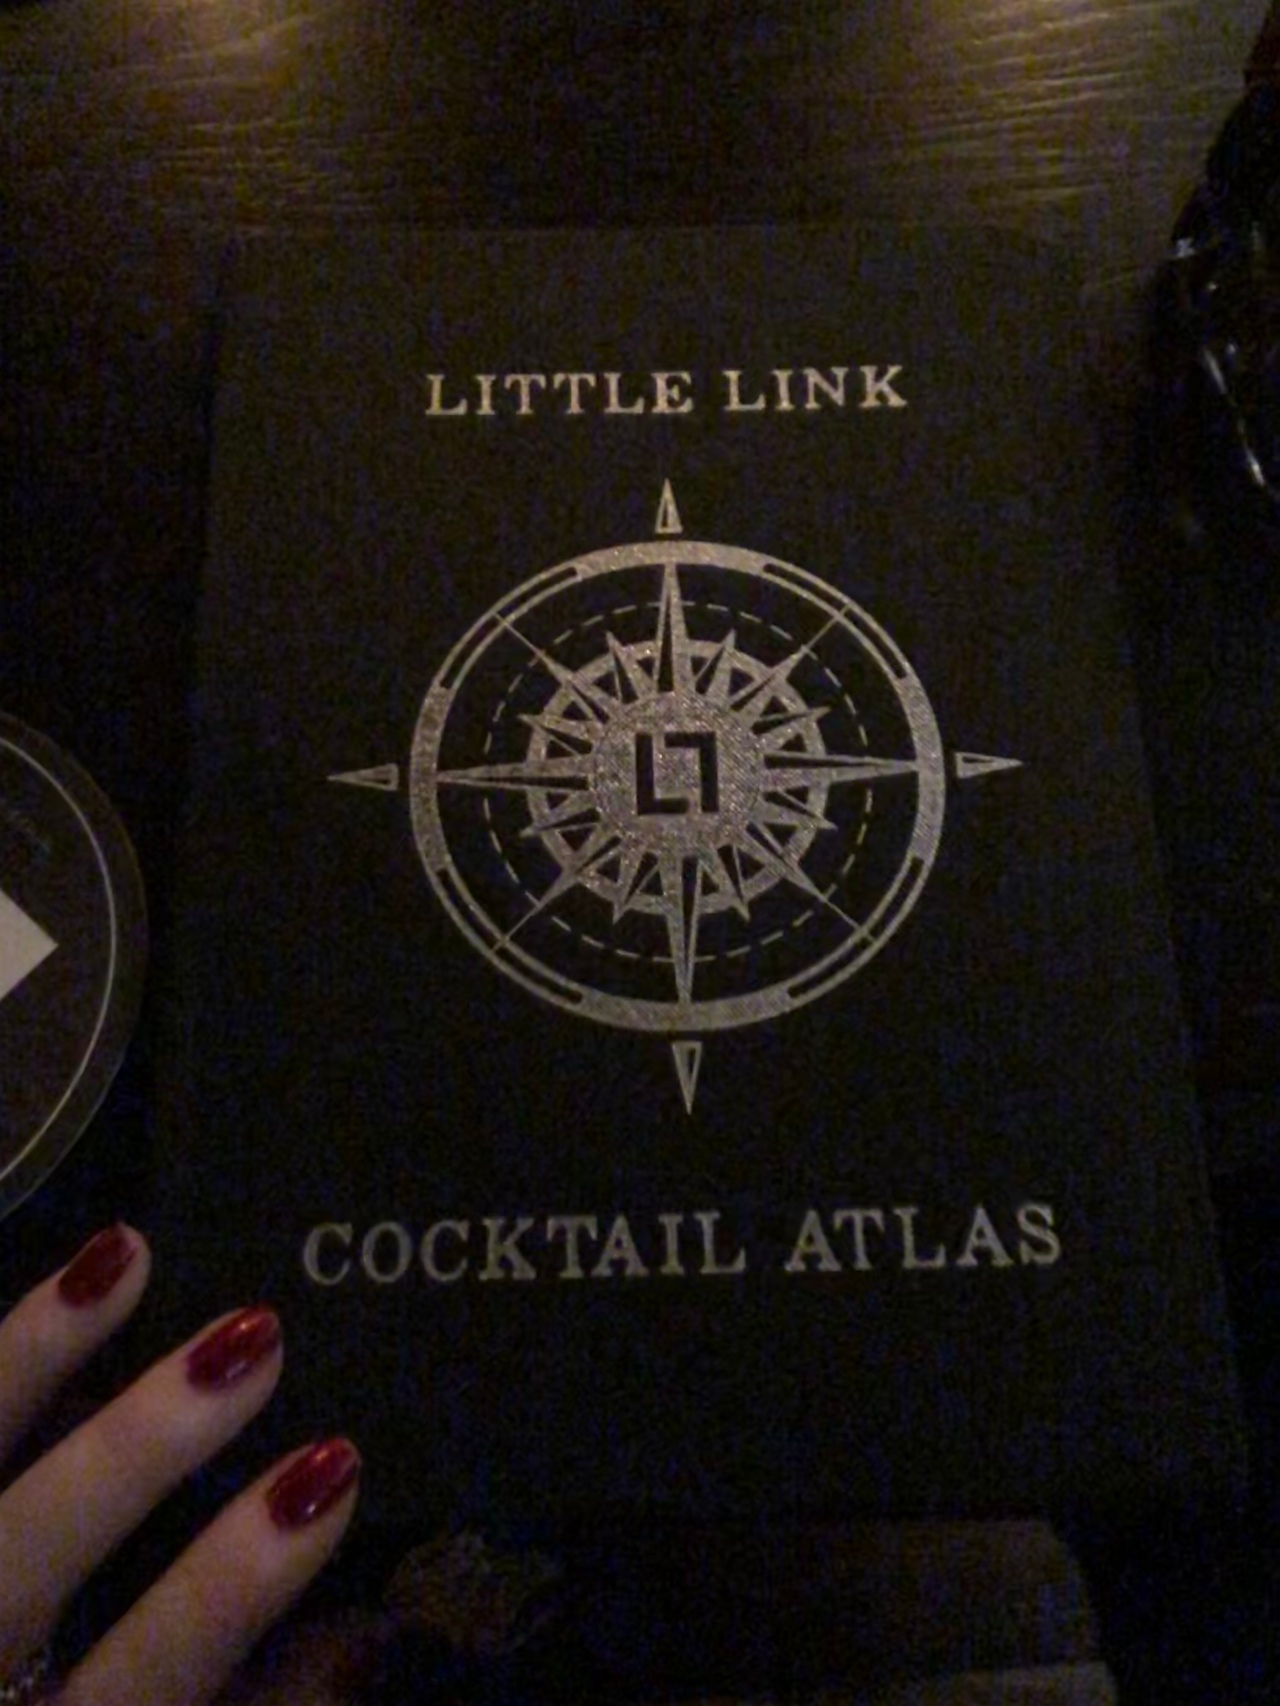 Little link cocktail atlas Cologne